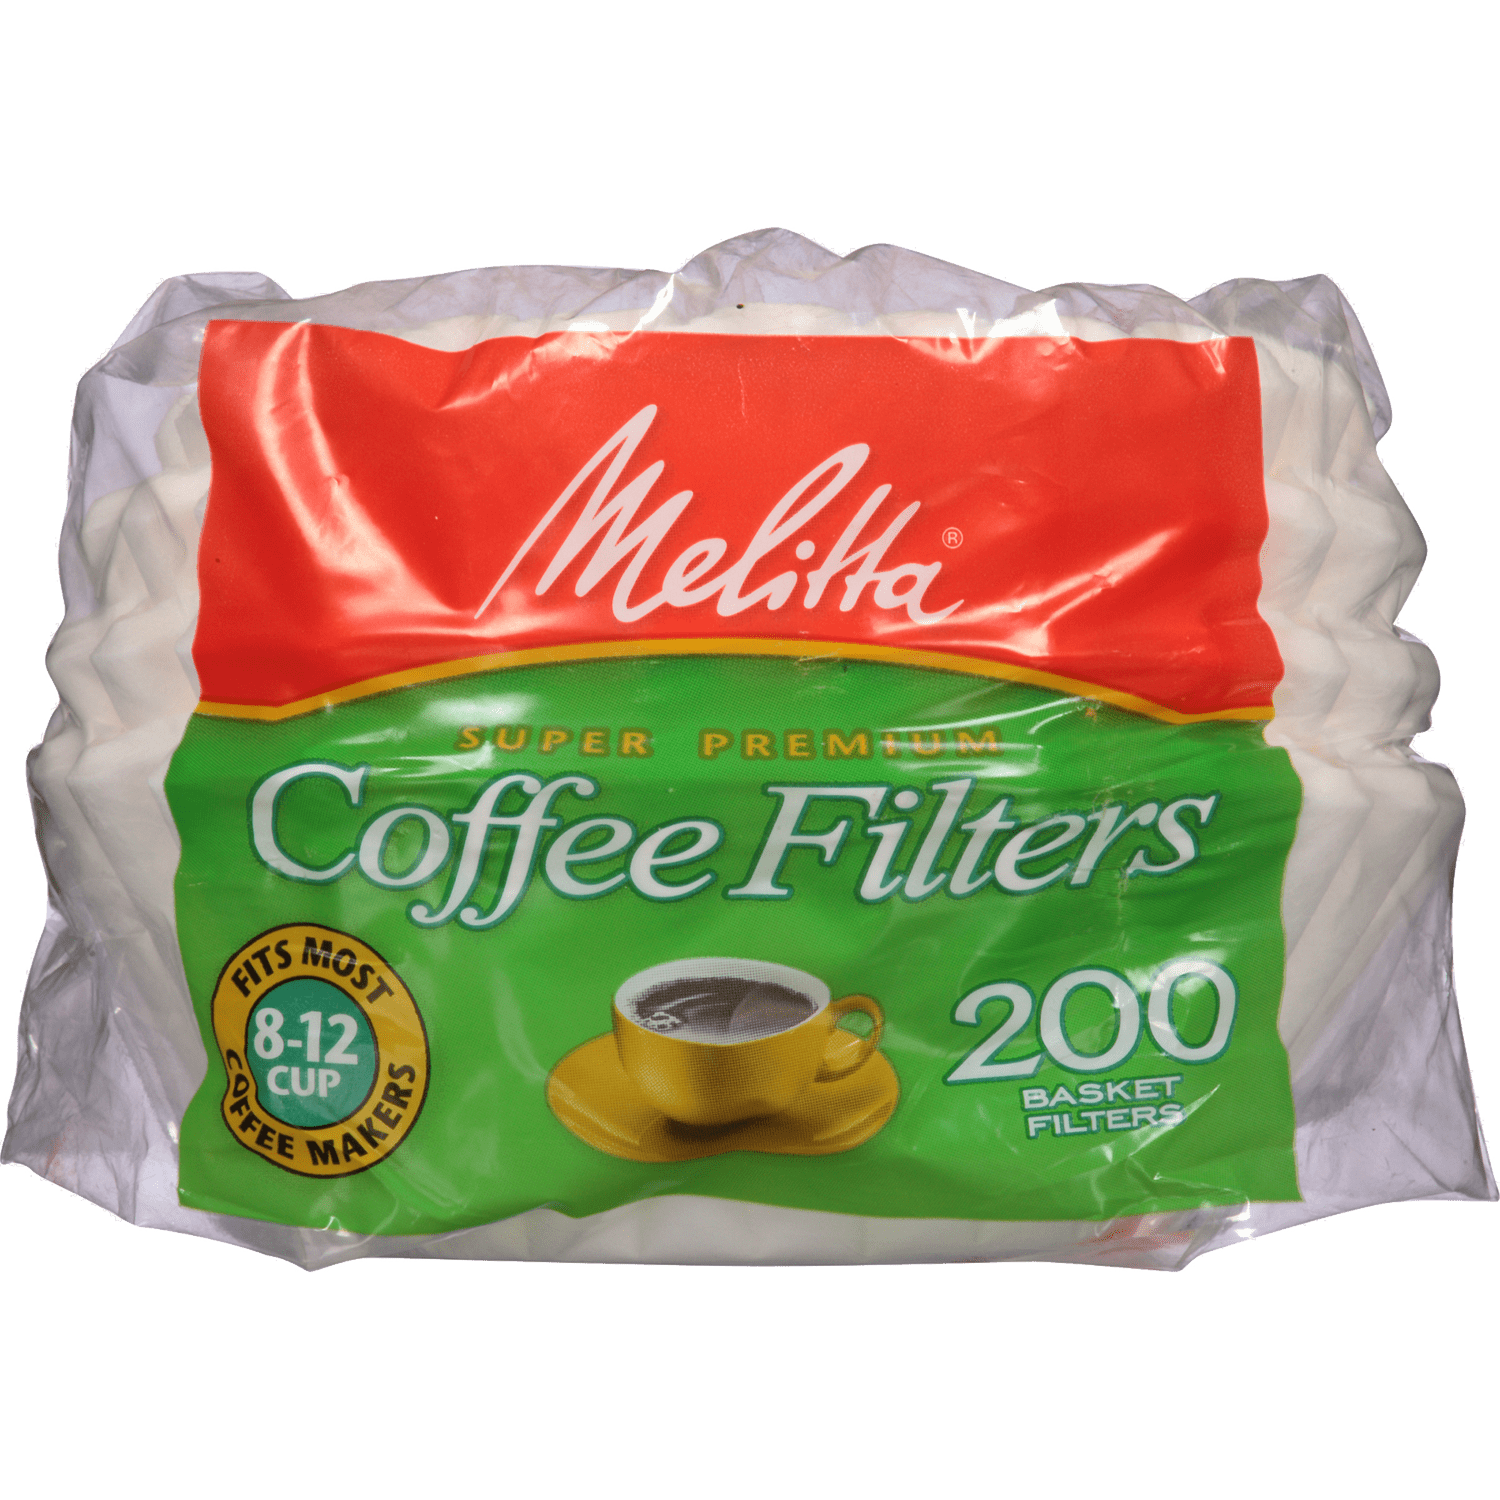 8-12 Cup Melitta Basket Filter Paper White - 200 Count